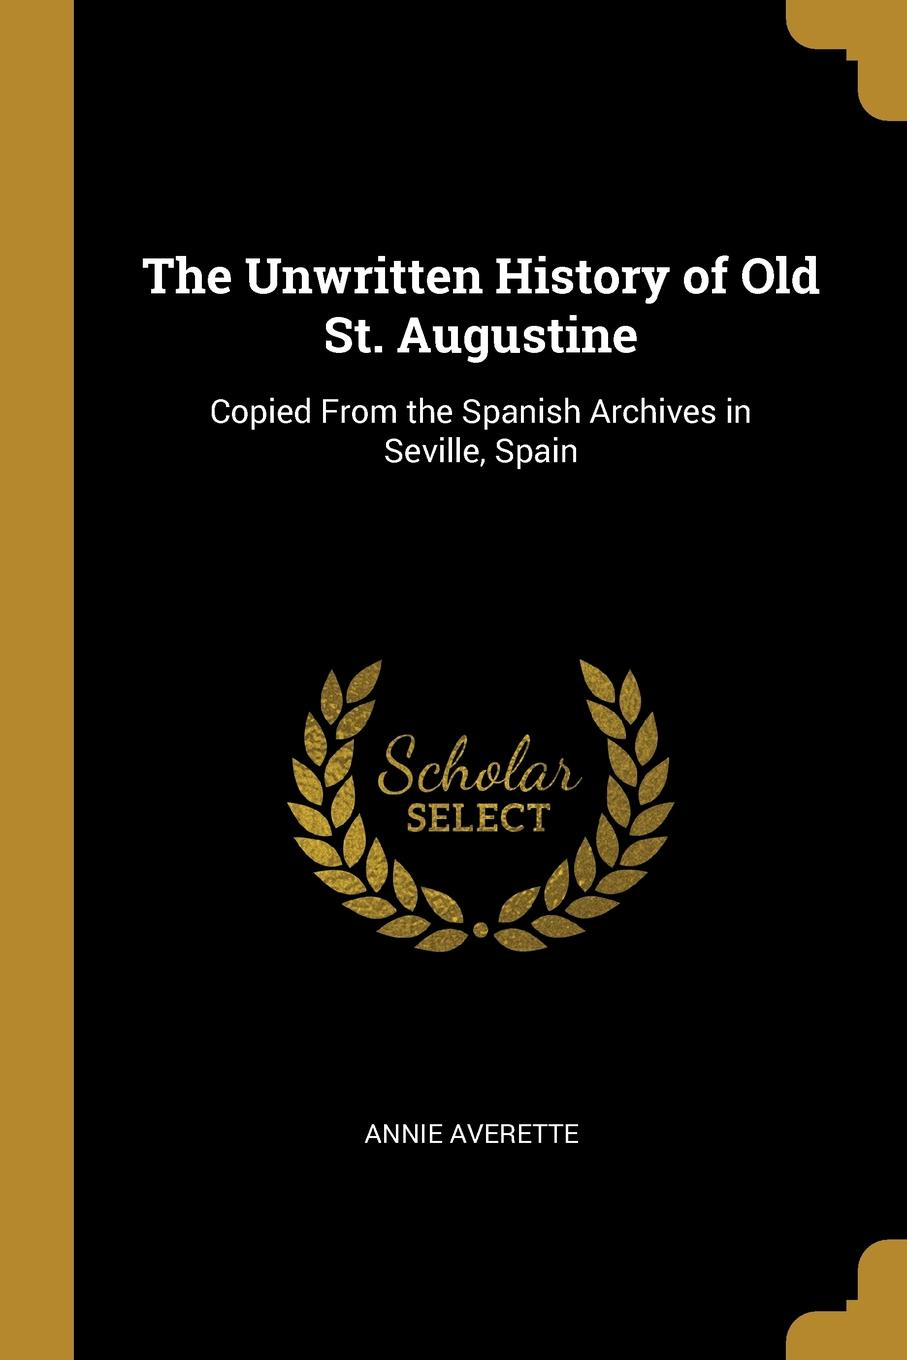 The Unwritten History of Old St. Augustine. Copied From the Spanish Archives in Seville, Spain